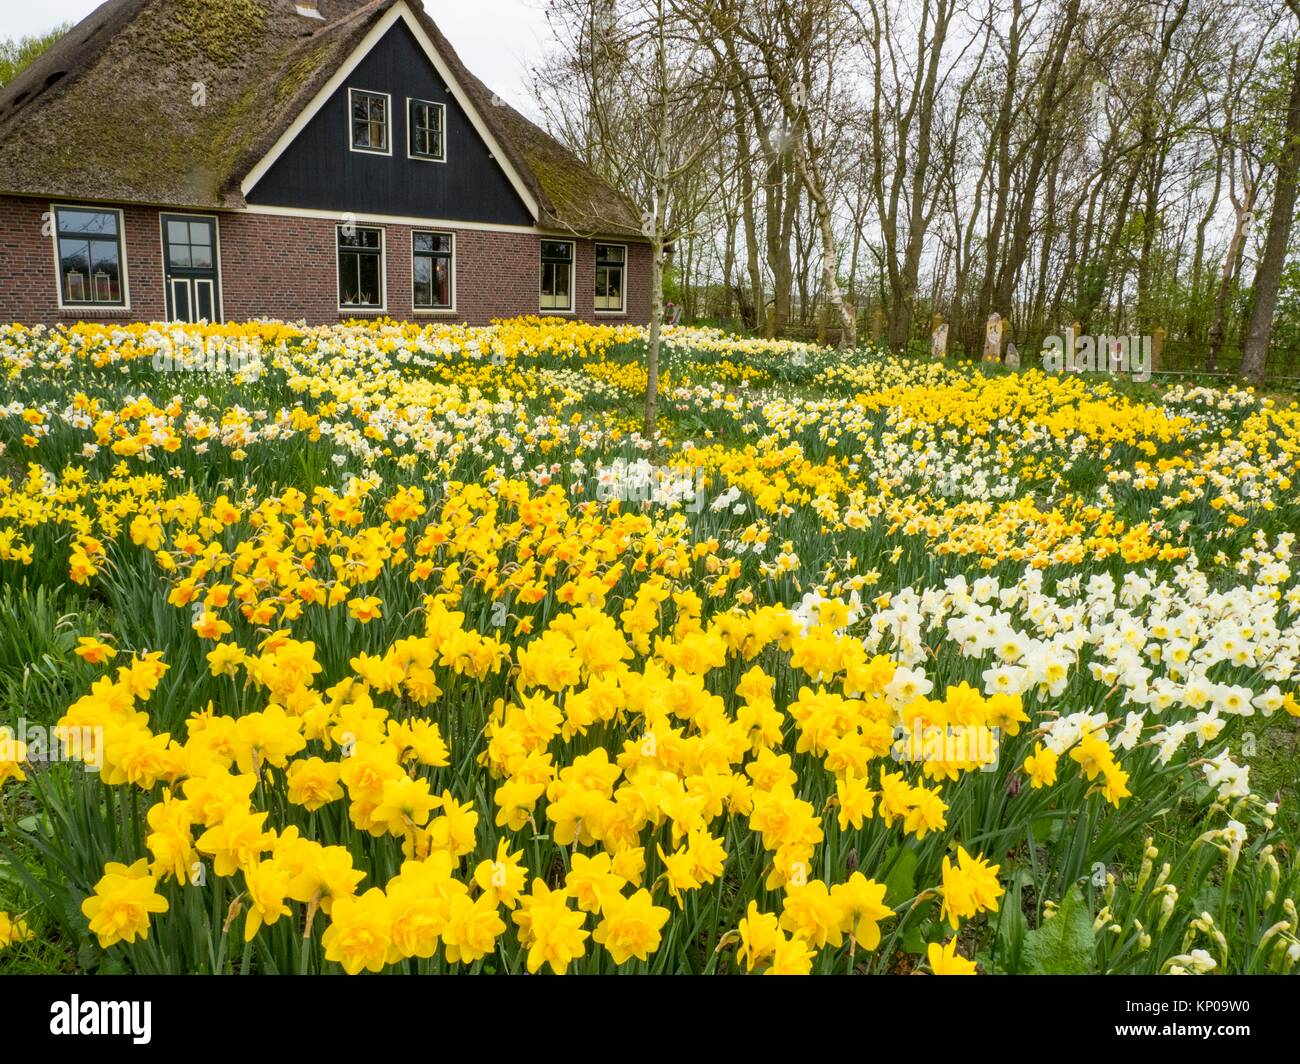 Noord Holland Rural Daffodil House. - Stock Image